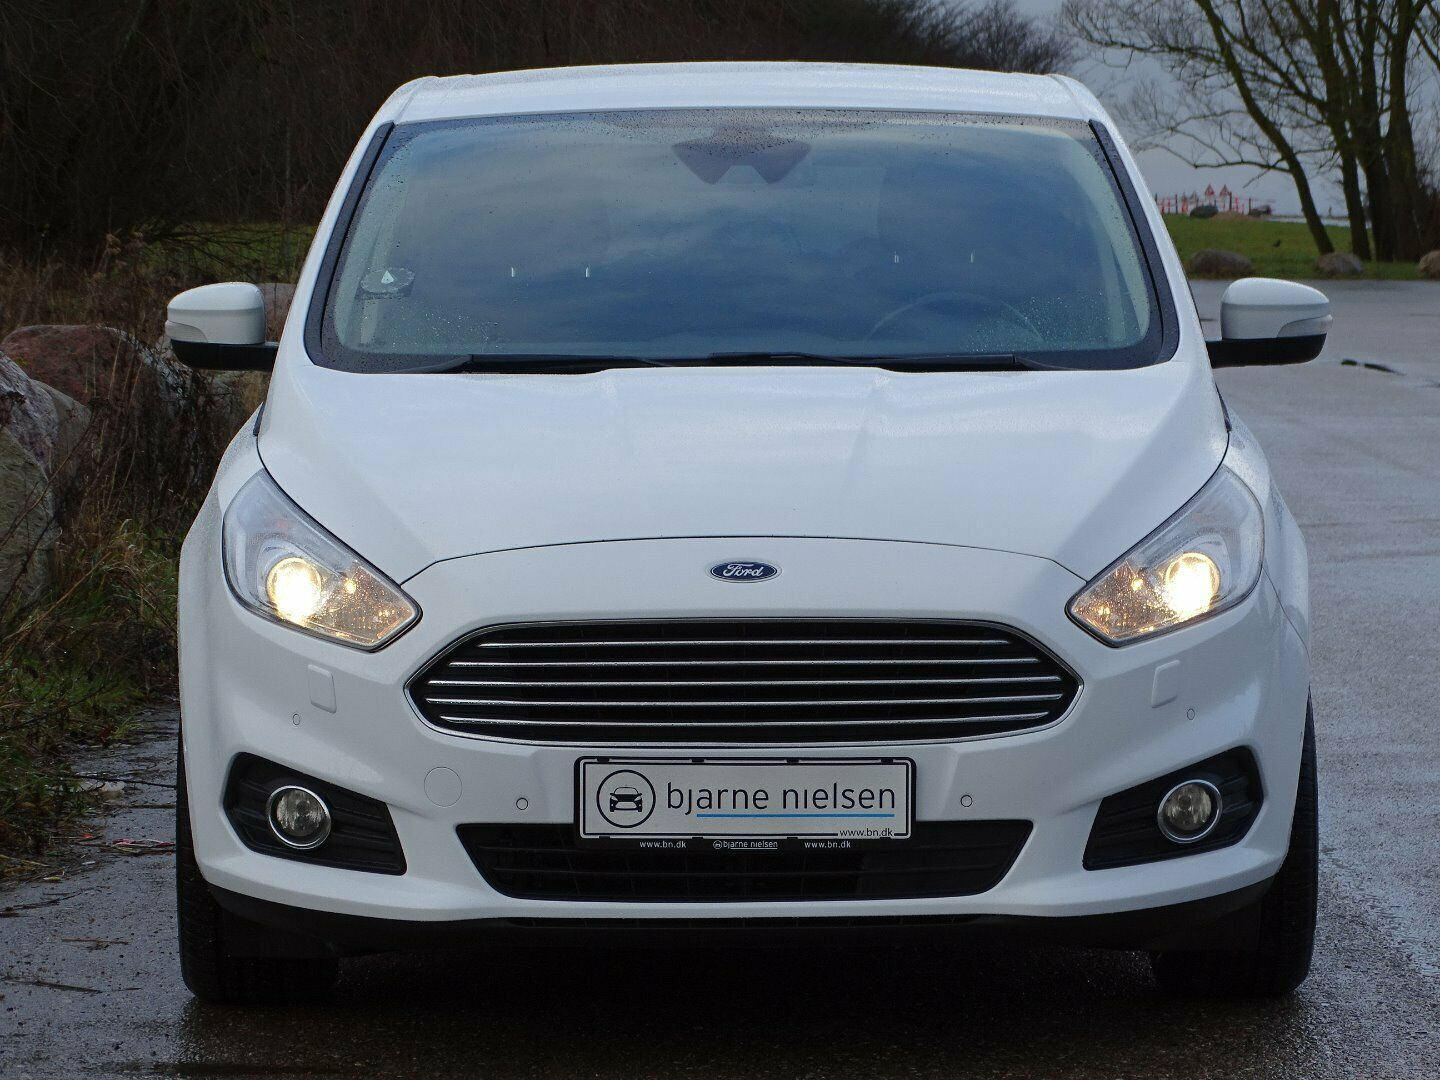 Ford S-MAX 2,0 TDCi 150 Trend aut. - billede 2